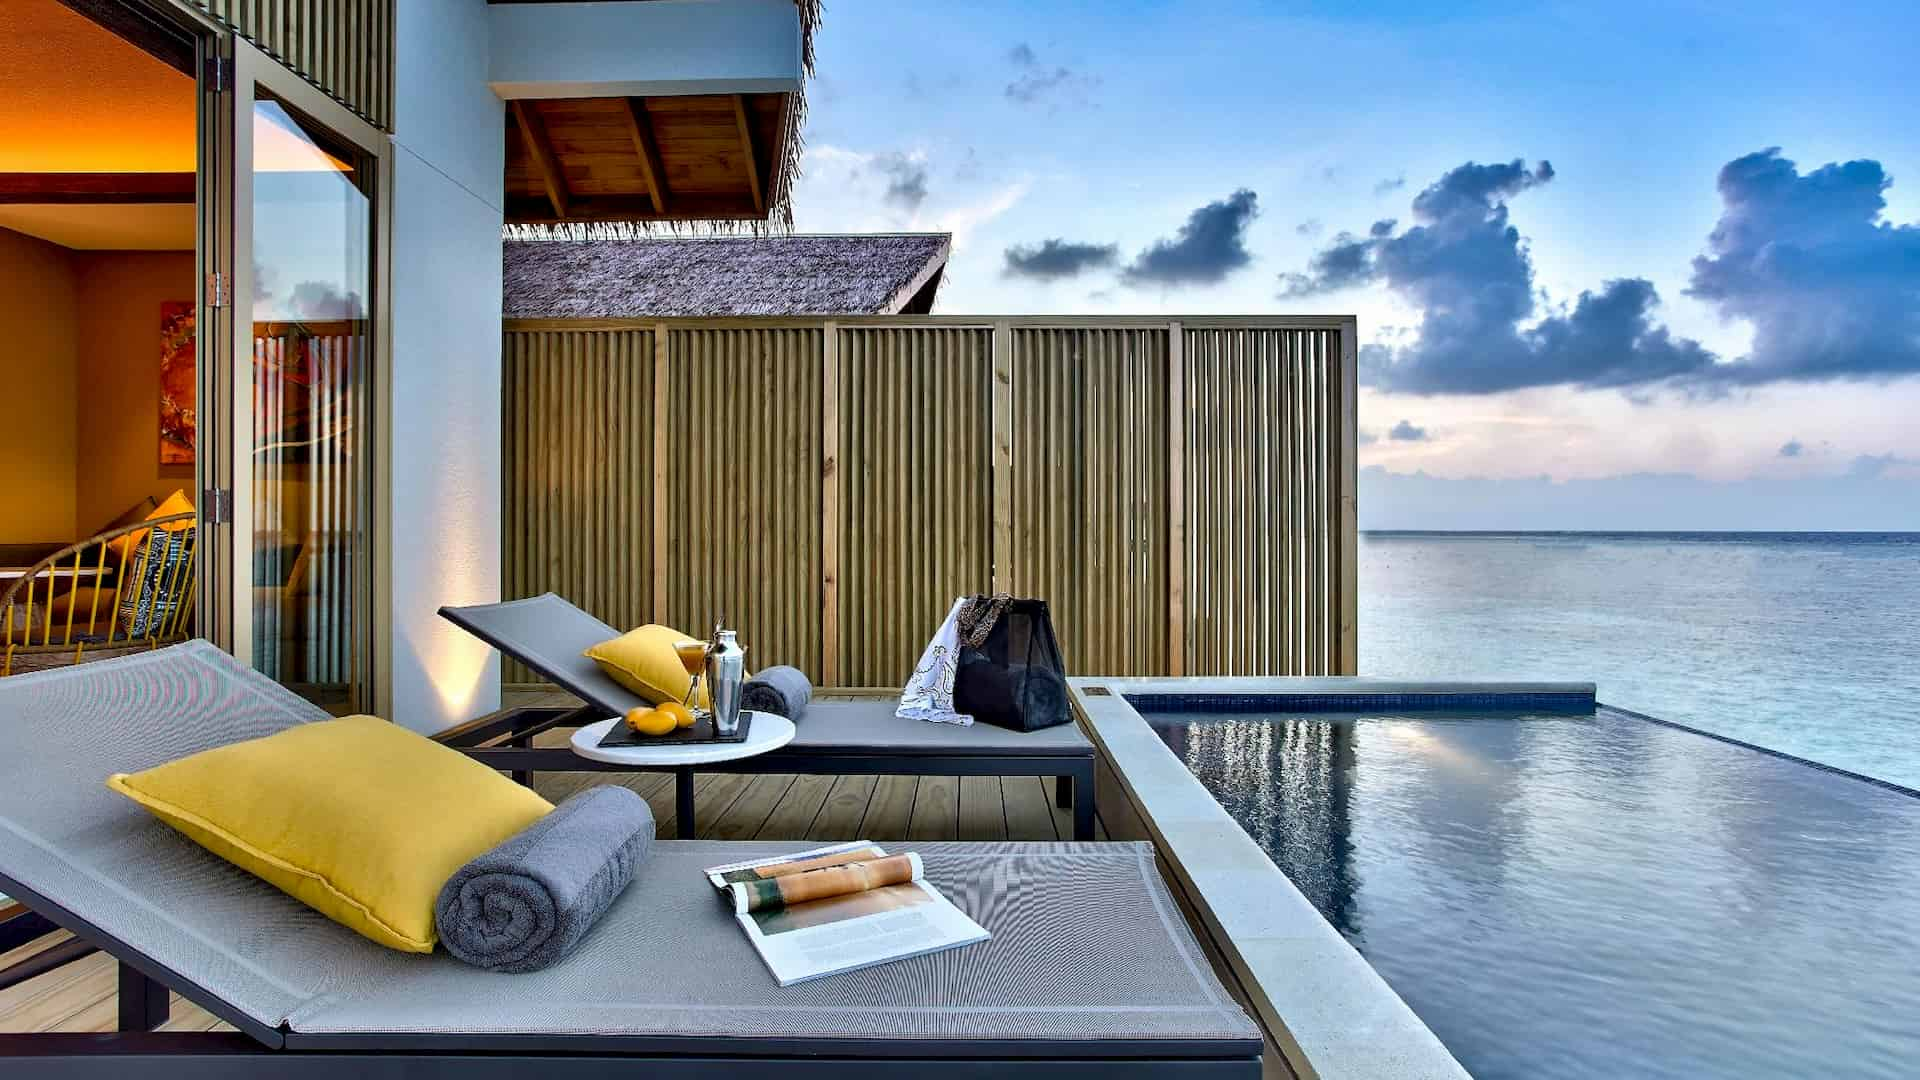 Resort Maldive Hard Rock platinum overwater pool villa